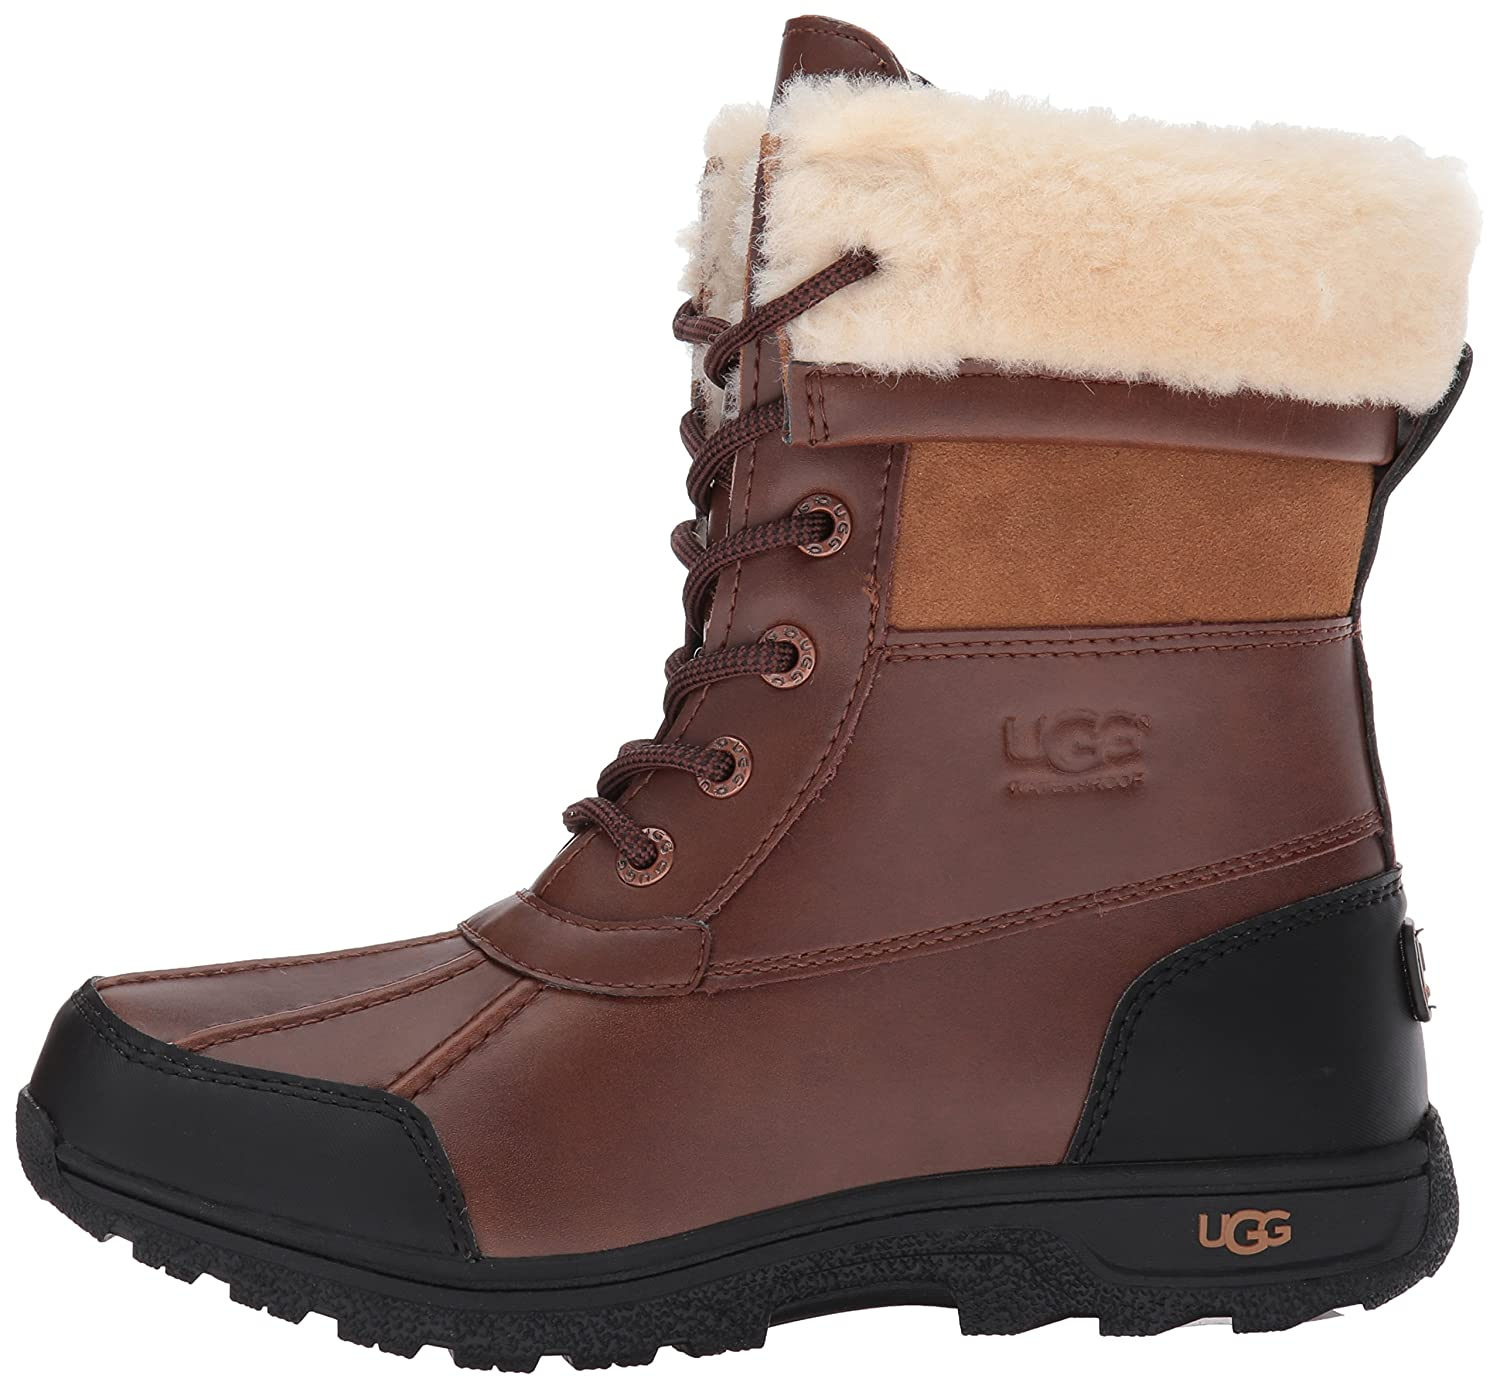 3d32b88d50c UGG Kids K BUTTE II Lace-Up Boots